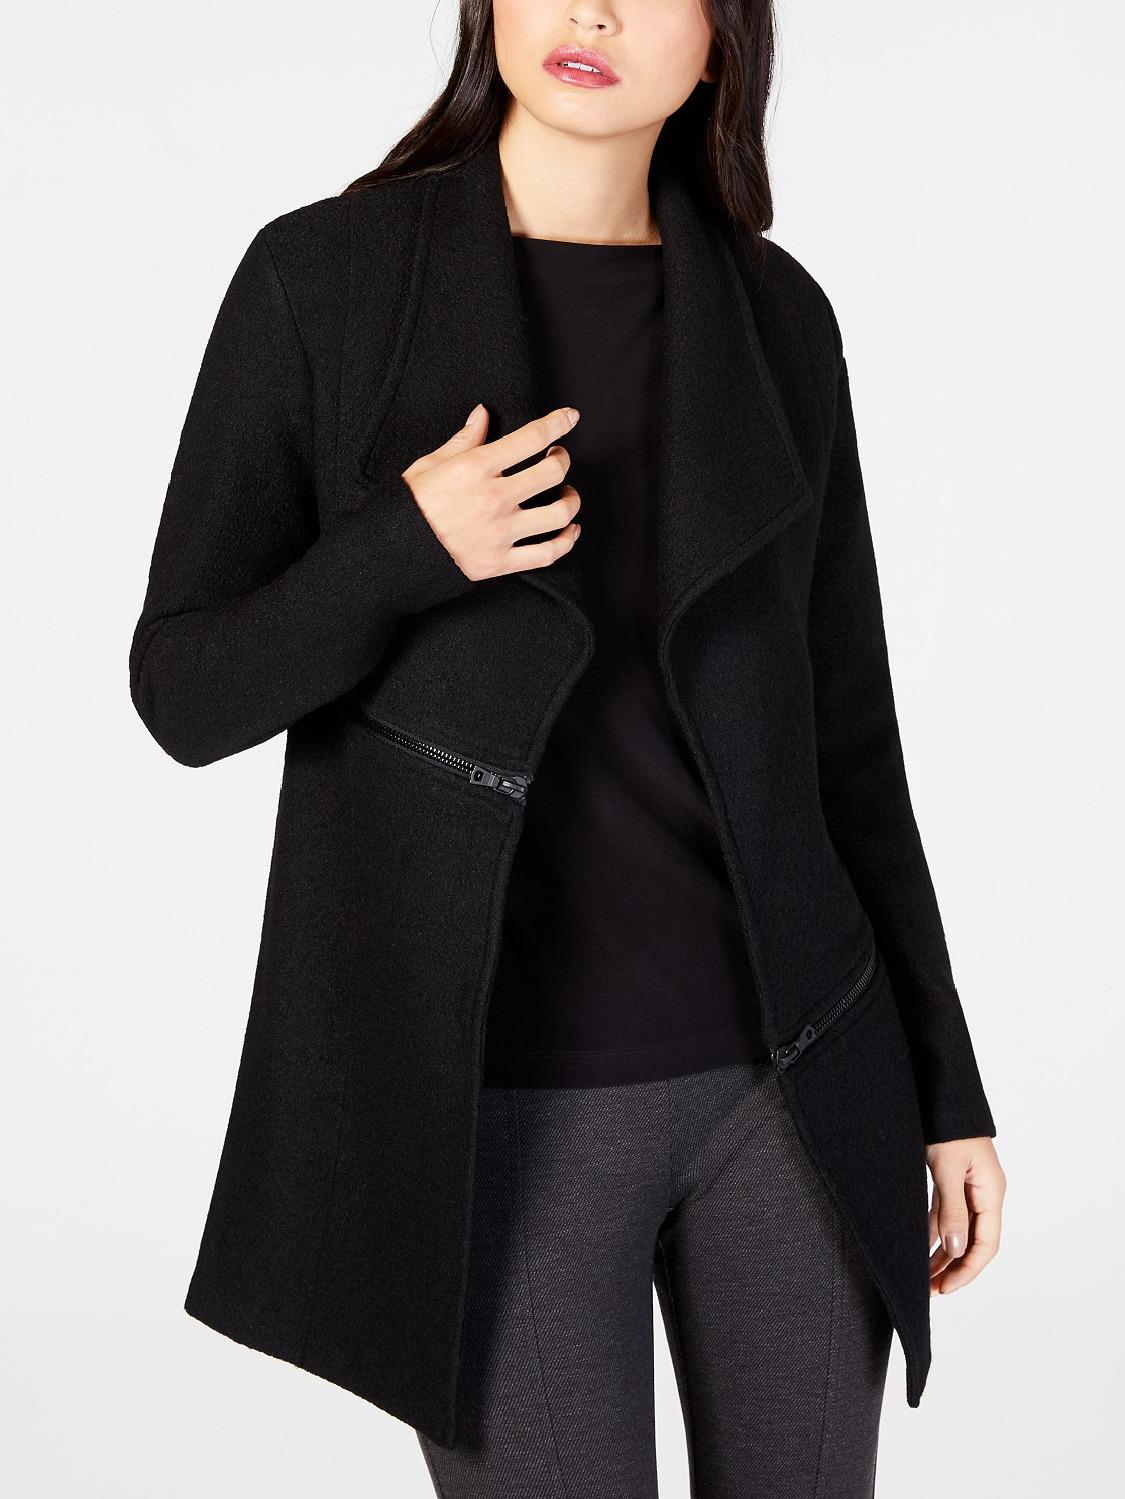 Wide lapel jacket with open front and zipper accents